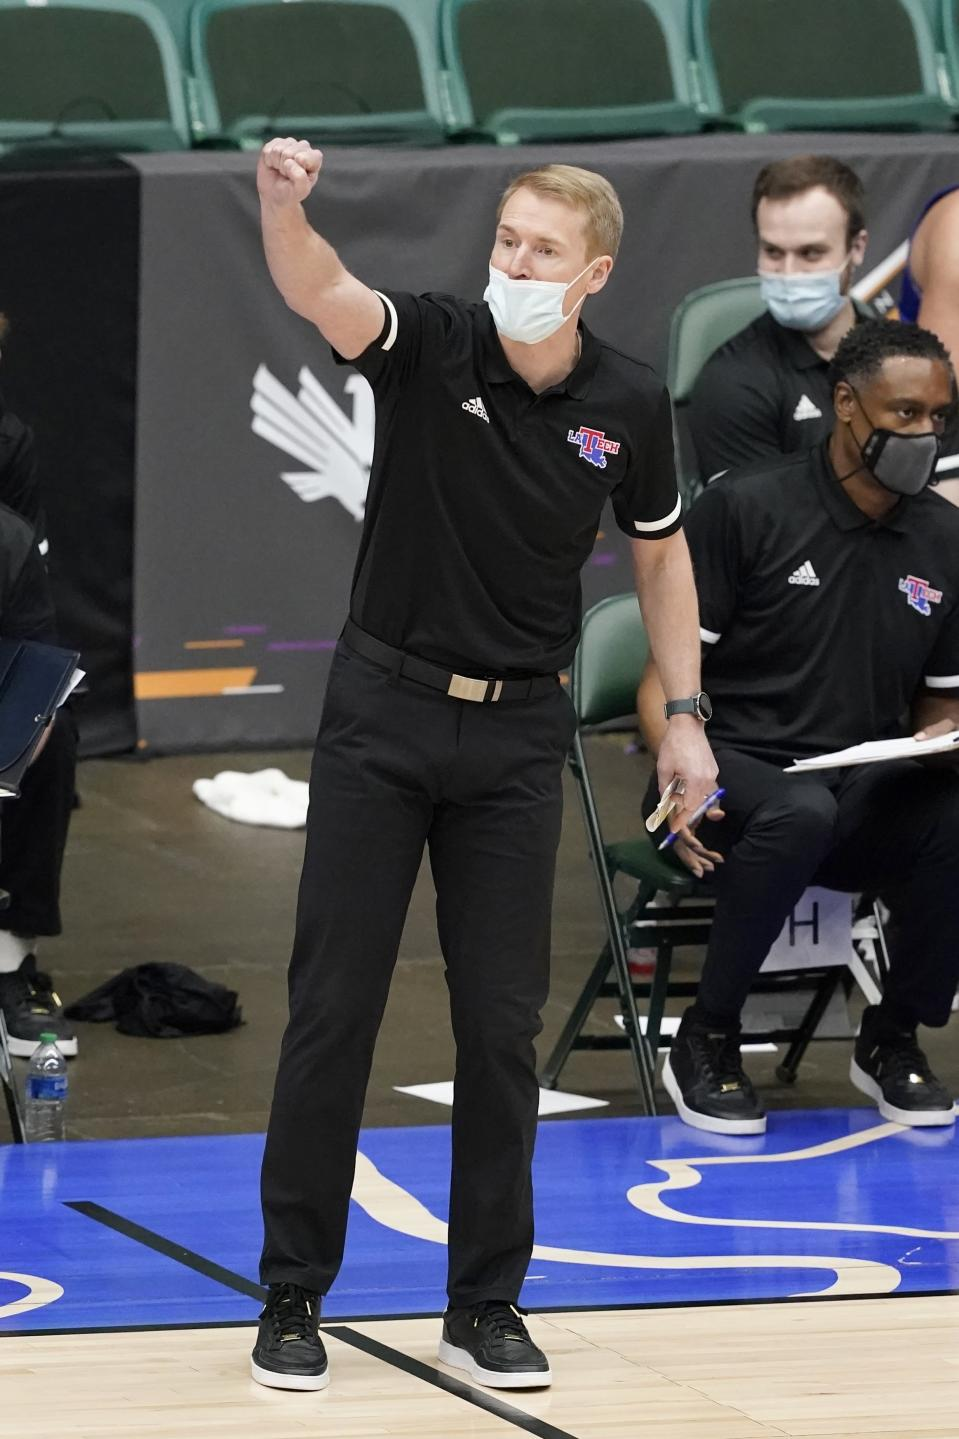 Louisiana Tech head coach Eric Konkol instructs his team in the second half of an NCAA college basketball game against Colorado State in the NIT, Sunday, March 28, 2021, in Frisco, Texas. (AP Photo/Tony Gutierrez)